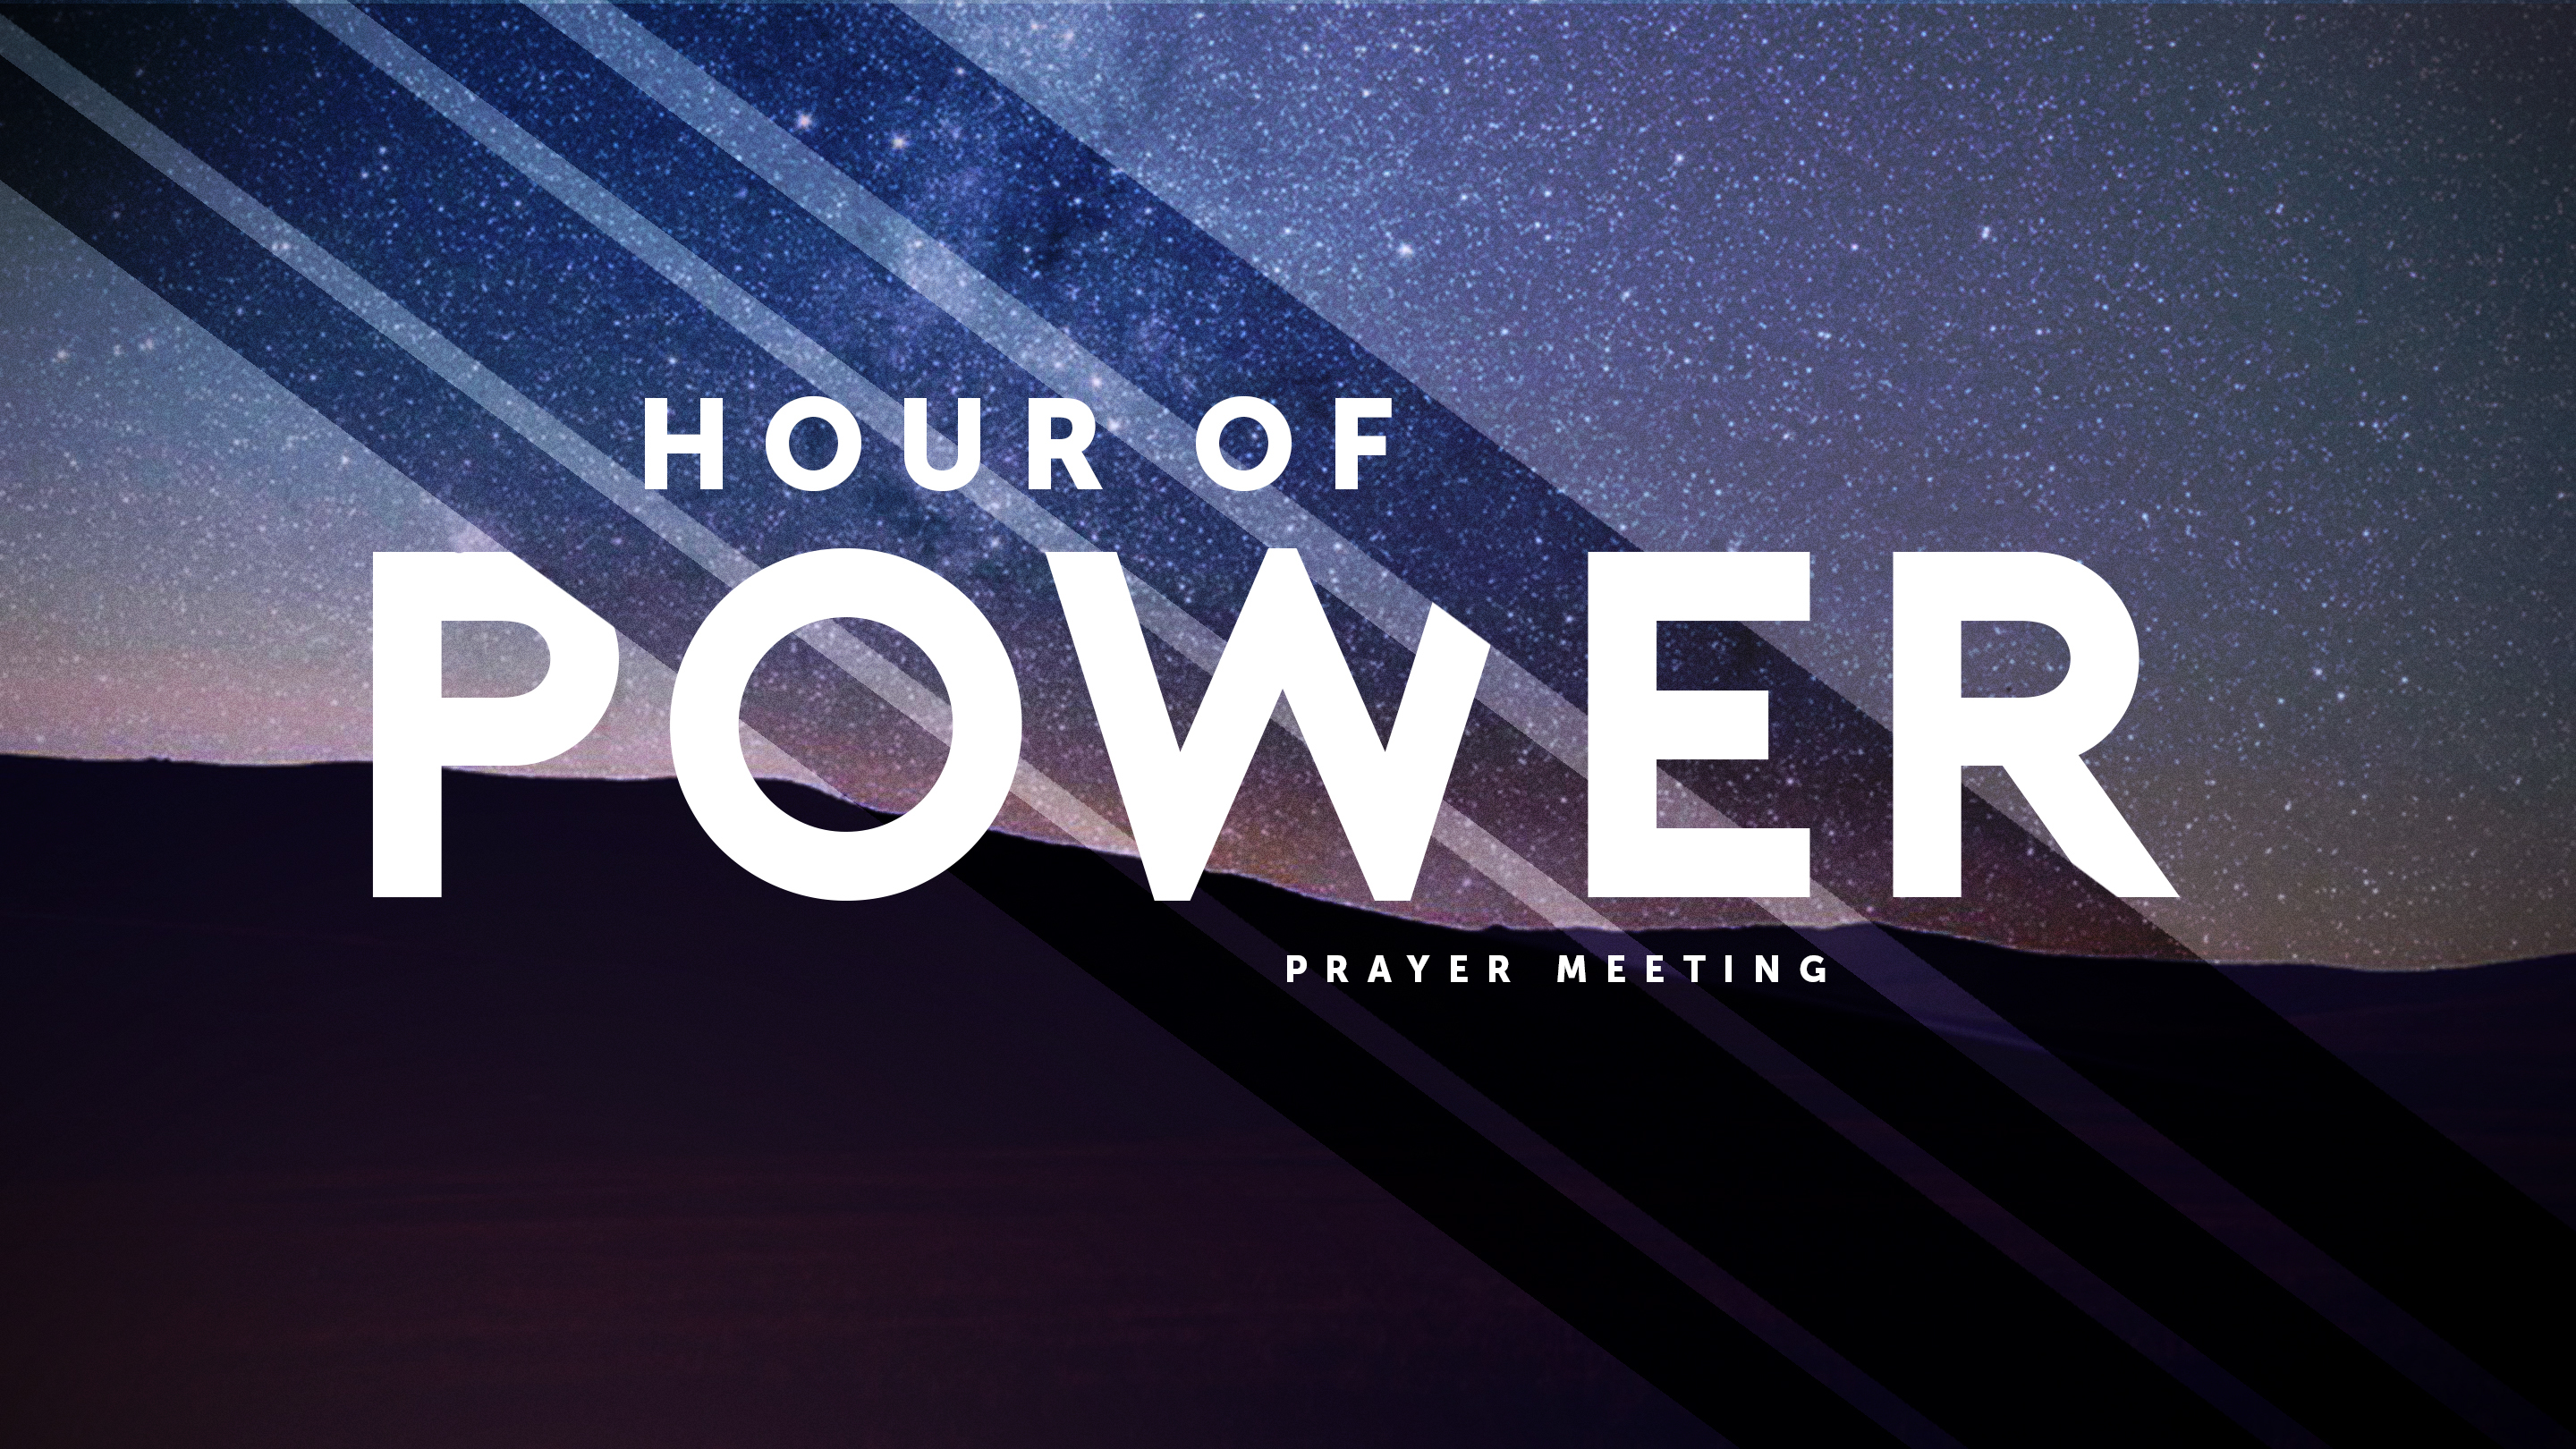 https://www.agminnyc.org/wp-content/uploads/2018/10/Hour-of-Power-Prayer-Meeting-Slide-1024x576.jpg  1024 576 Admin Admin ...